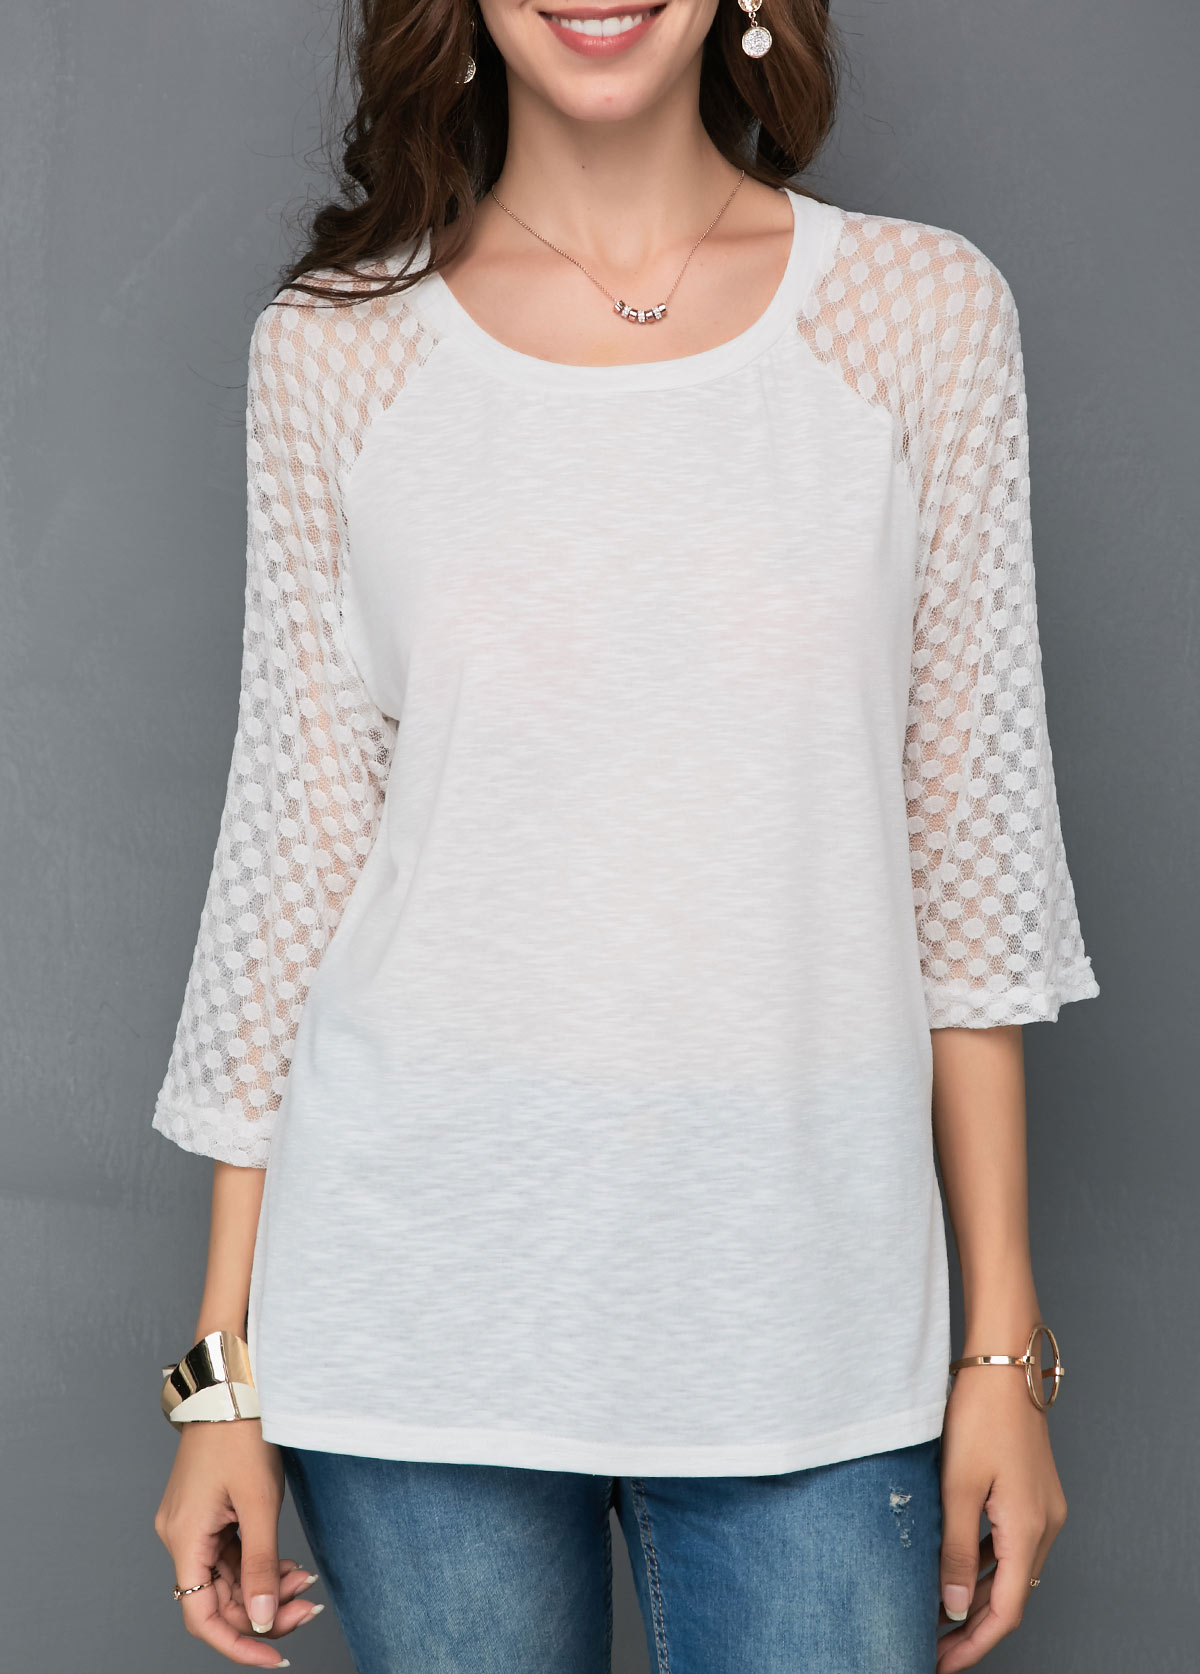 Mesh Dot Panel White T Shirt